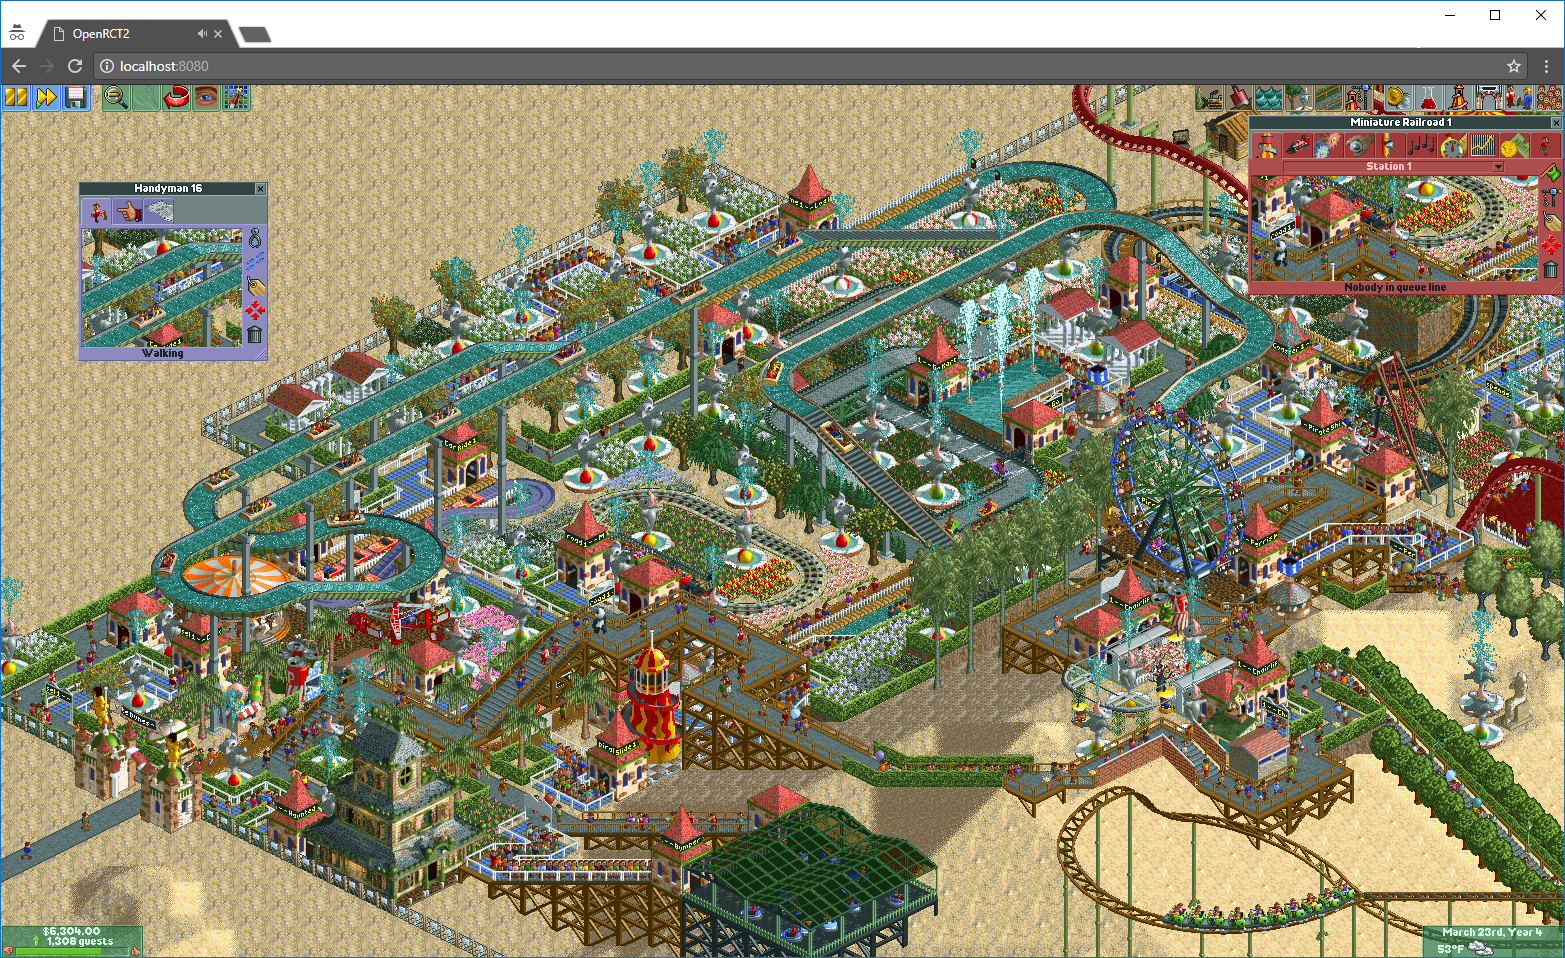 How to browserize RollerCoaster Tycoon? - Johannes Bader